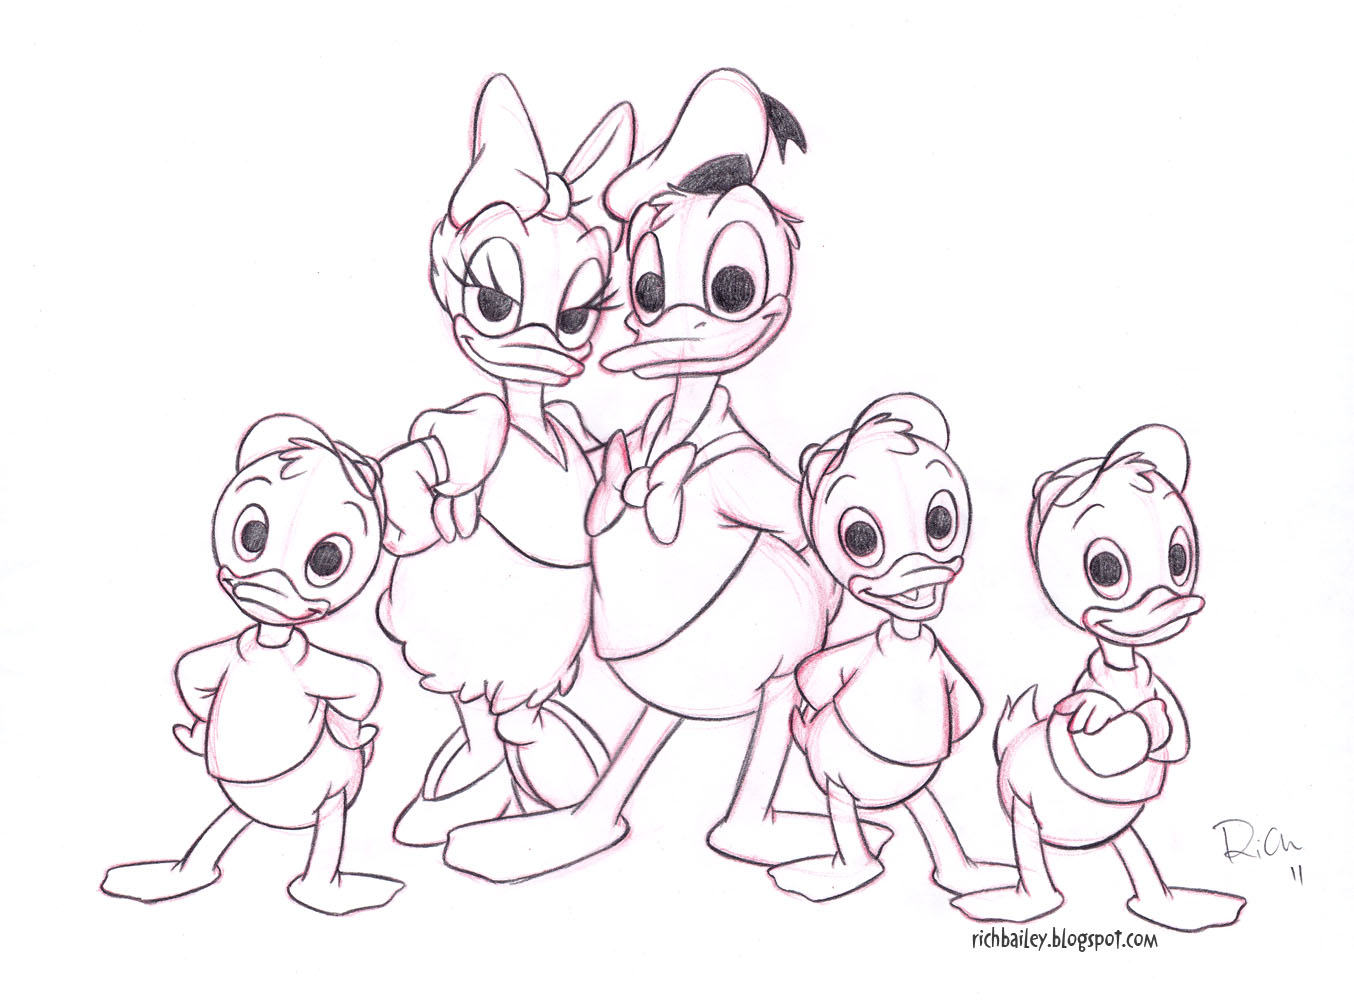 Donald Family Pic